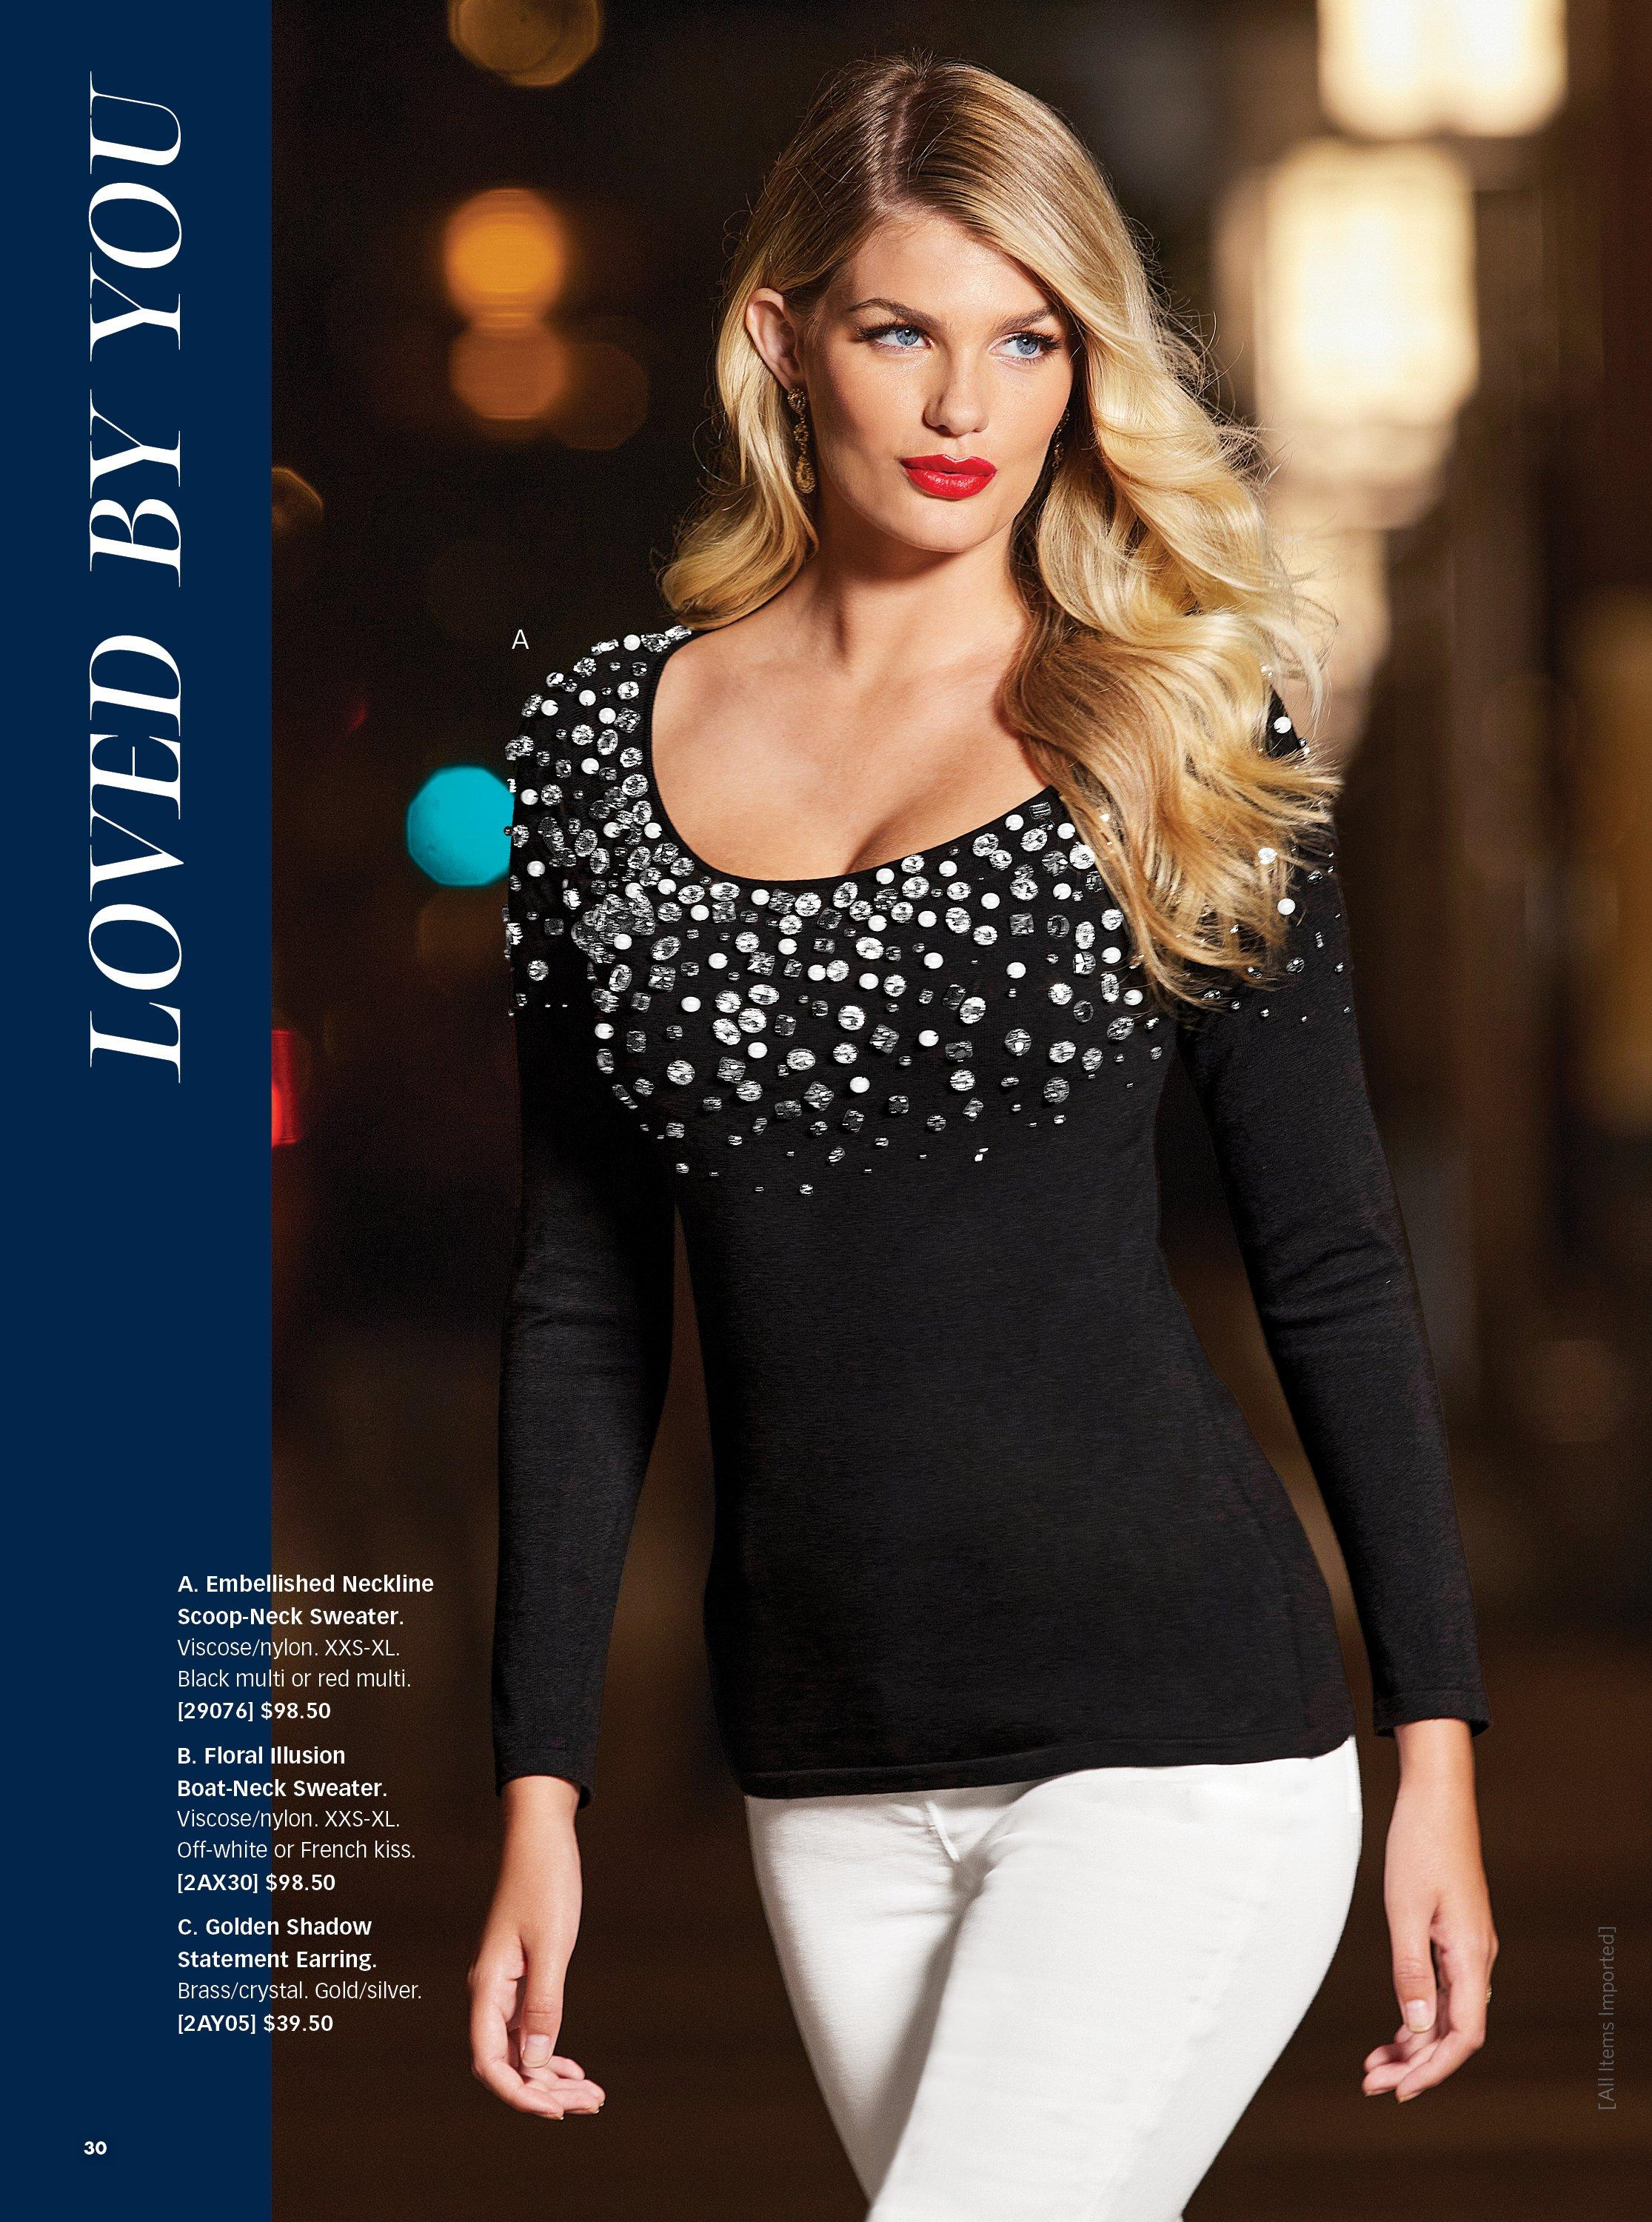 model wearing a black jewel embellished scoop-neck sweater and white pants.